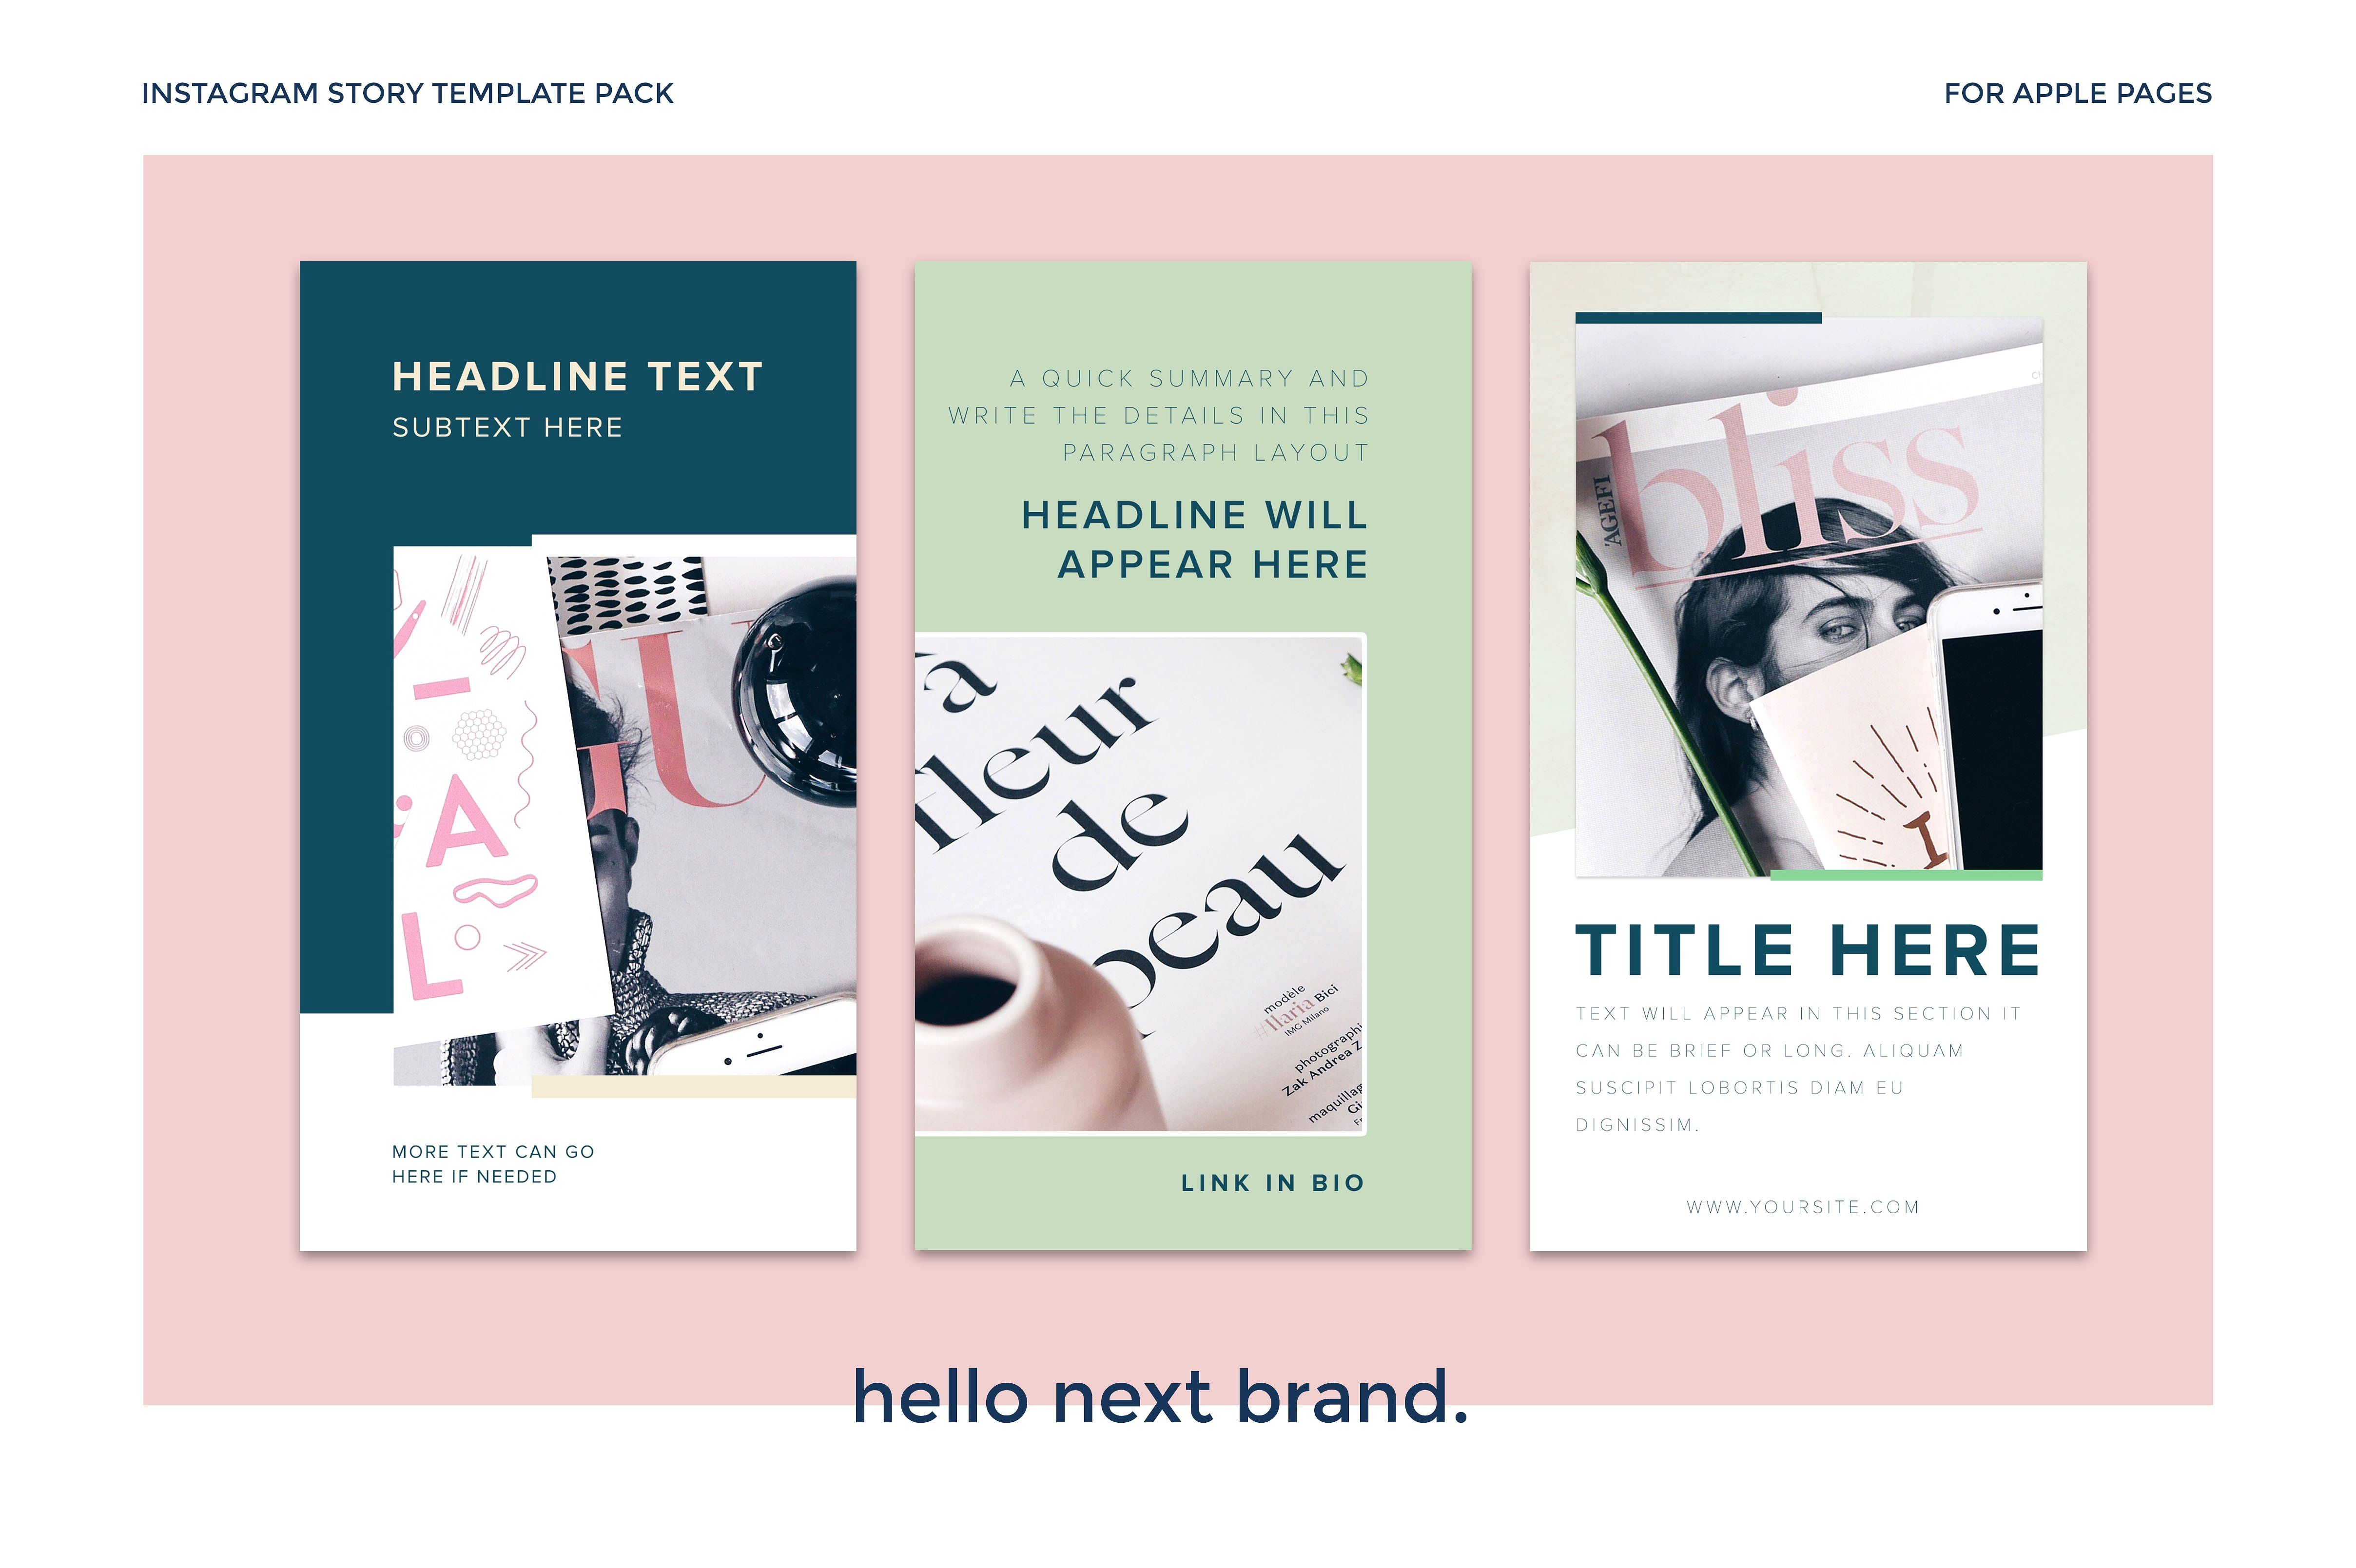 Insta Stories Pack For Apple Pages Pinterest Template - Instagram ad template